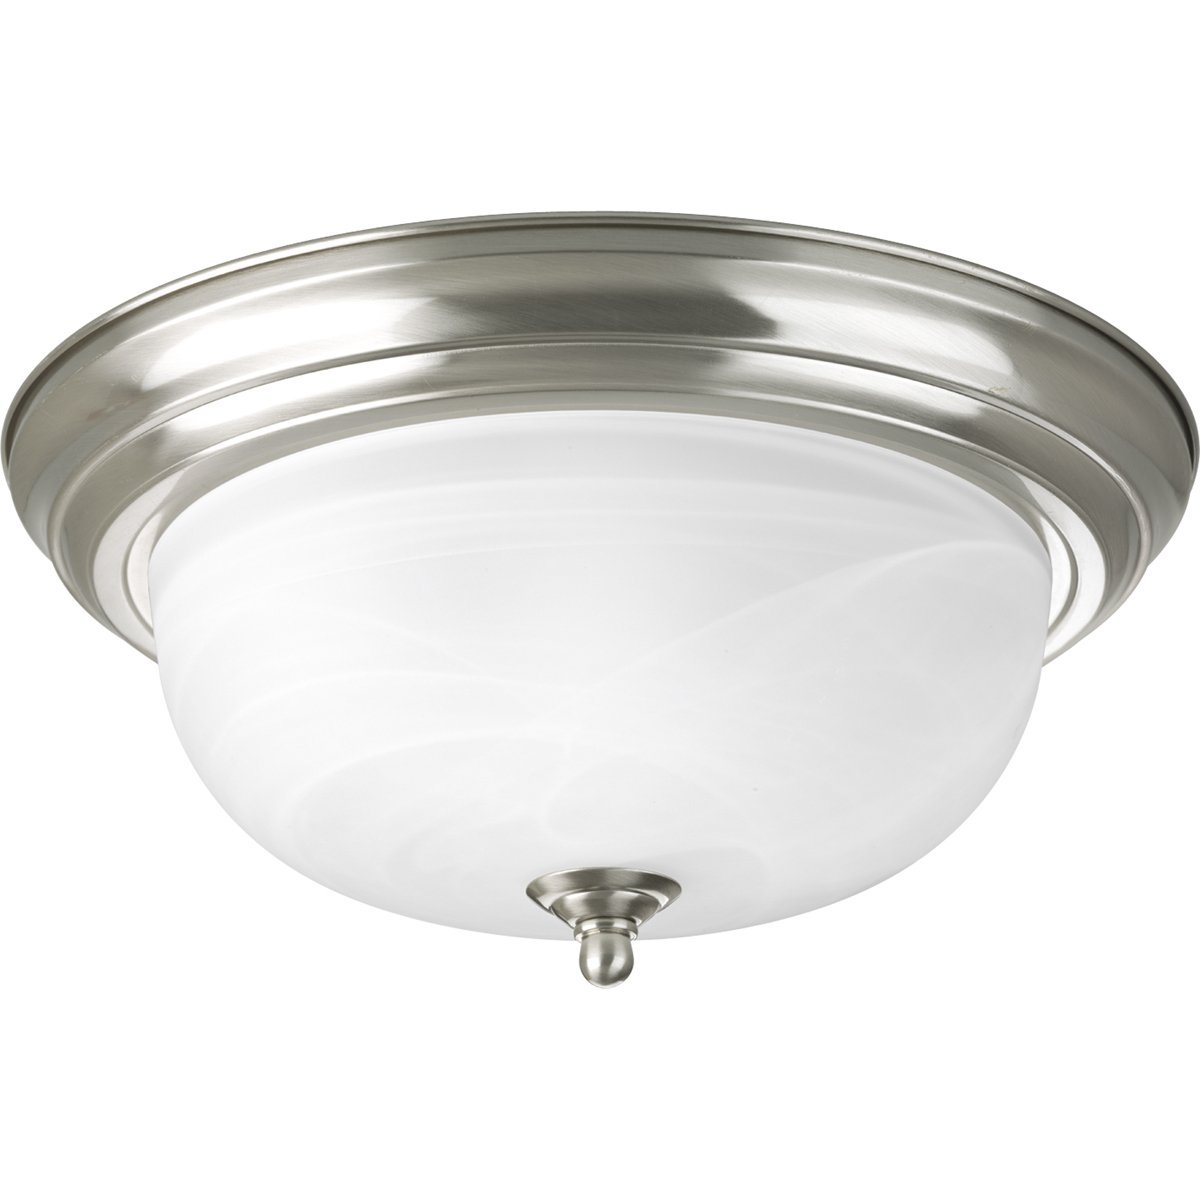 Ceiling Lights: TOP 10 Ceiling Light Types Of 2019